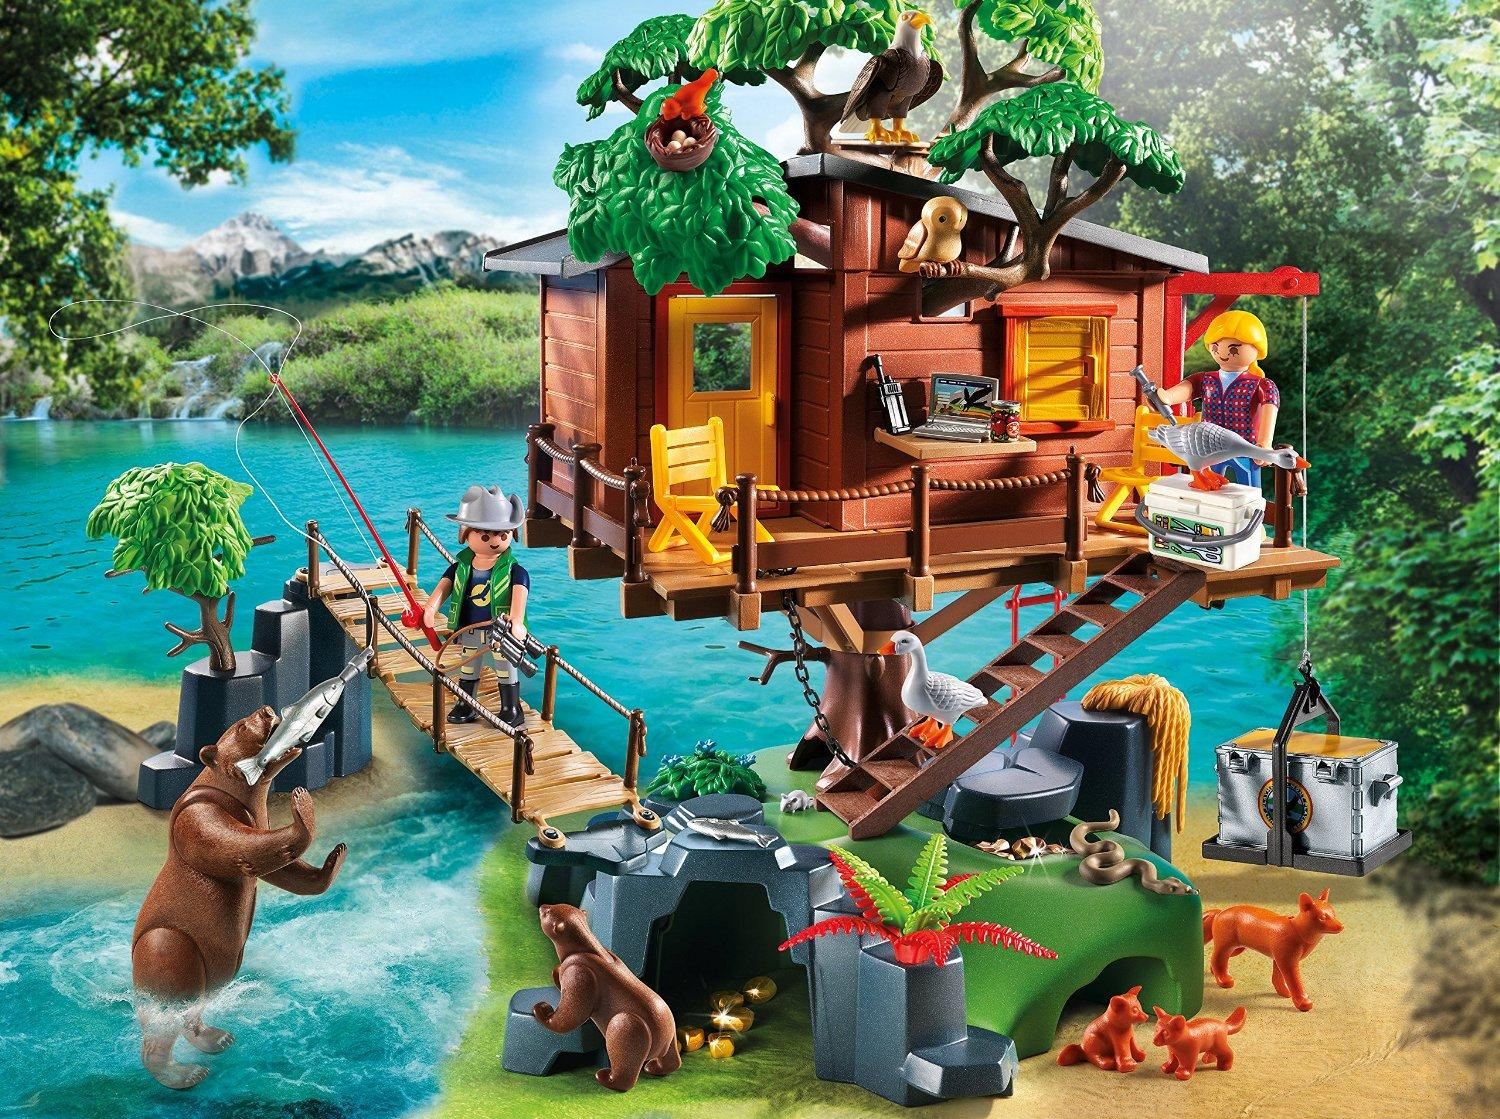 Treehouse Pictures Amazoncom Playmobil Adventure Tree House Toys Games